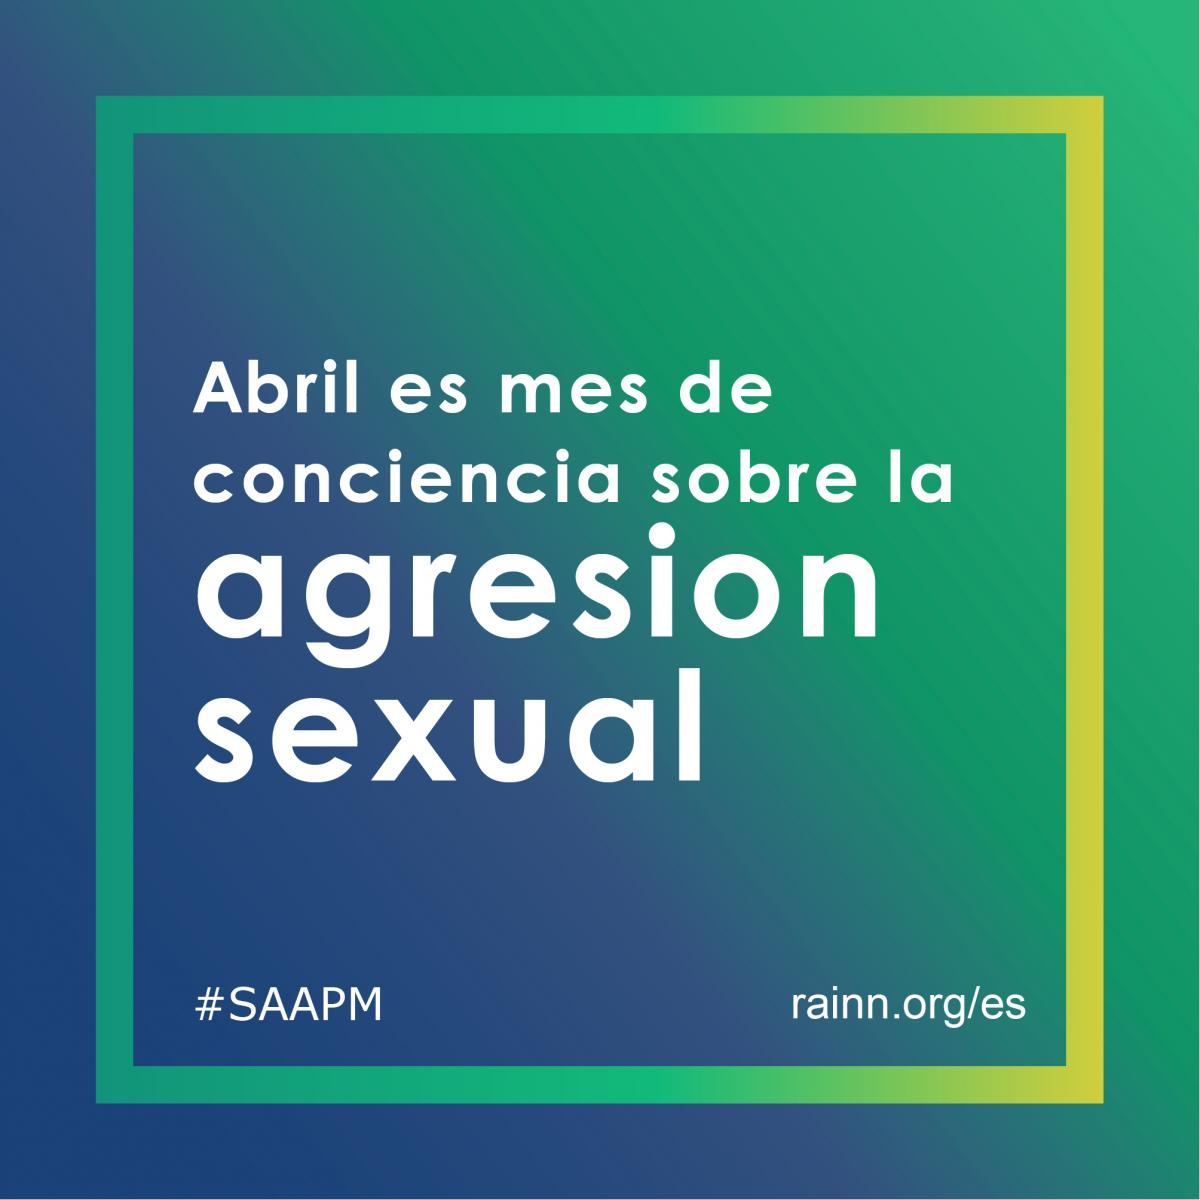 Instagram ready graphic stating: Abril es mes de conciencia sobre la agresion sexual